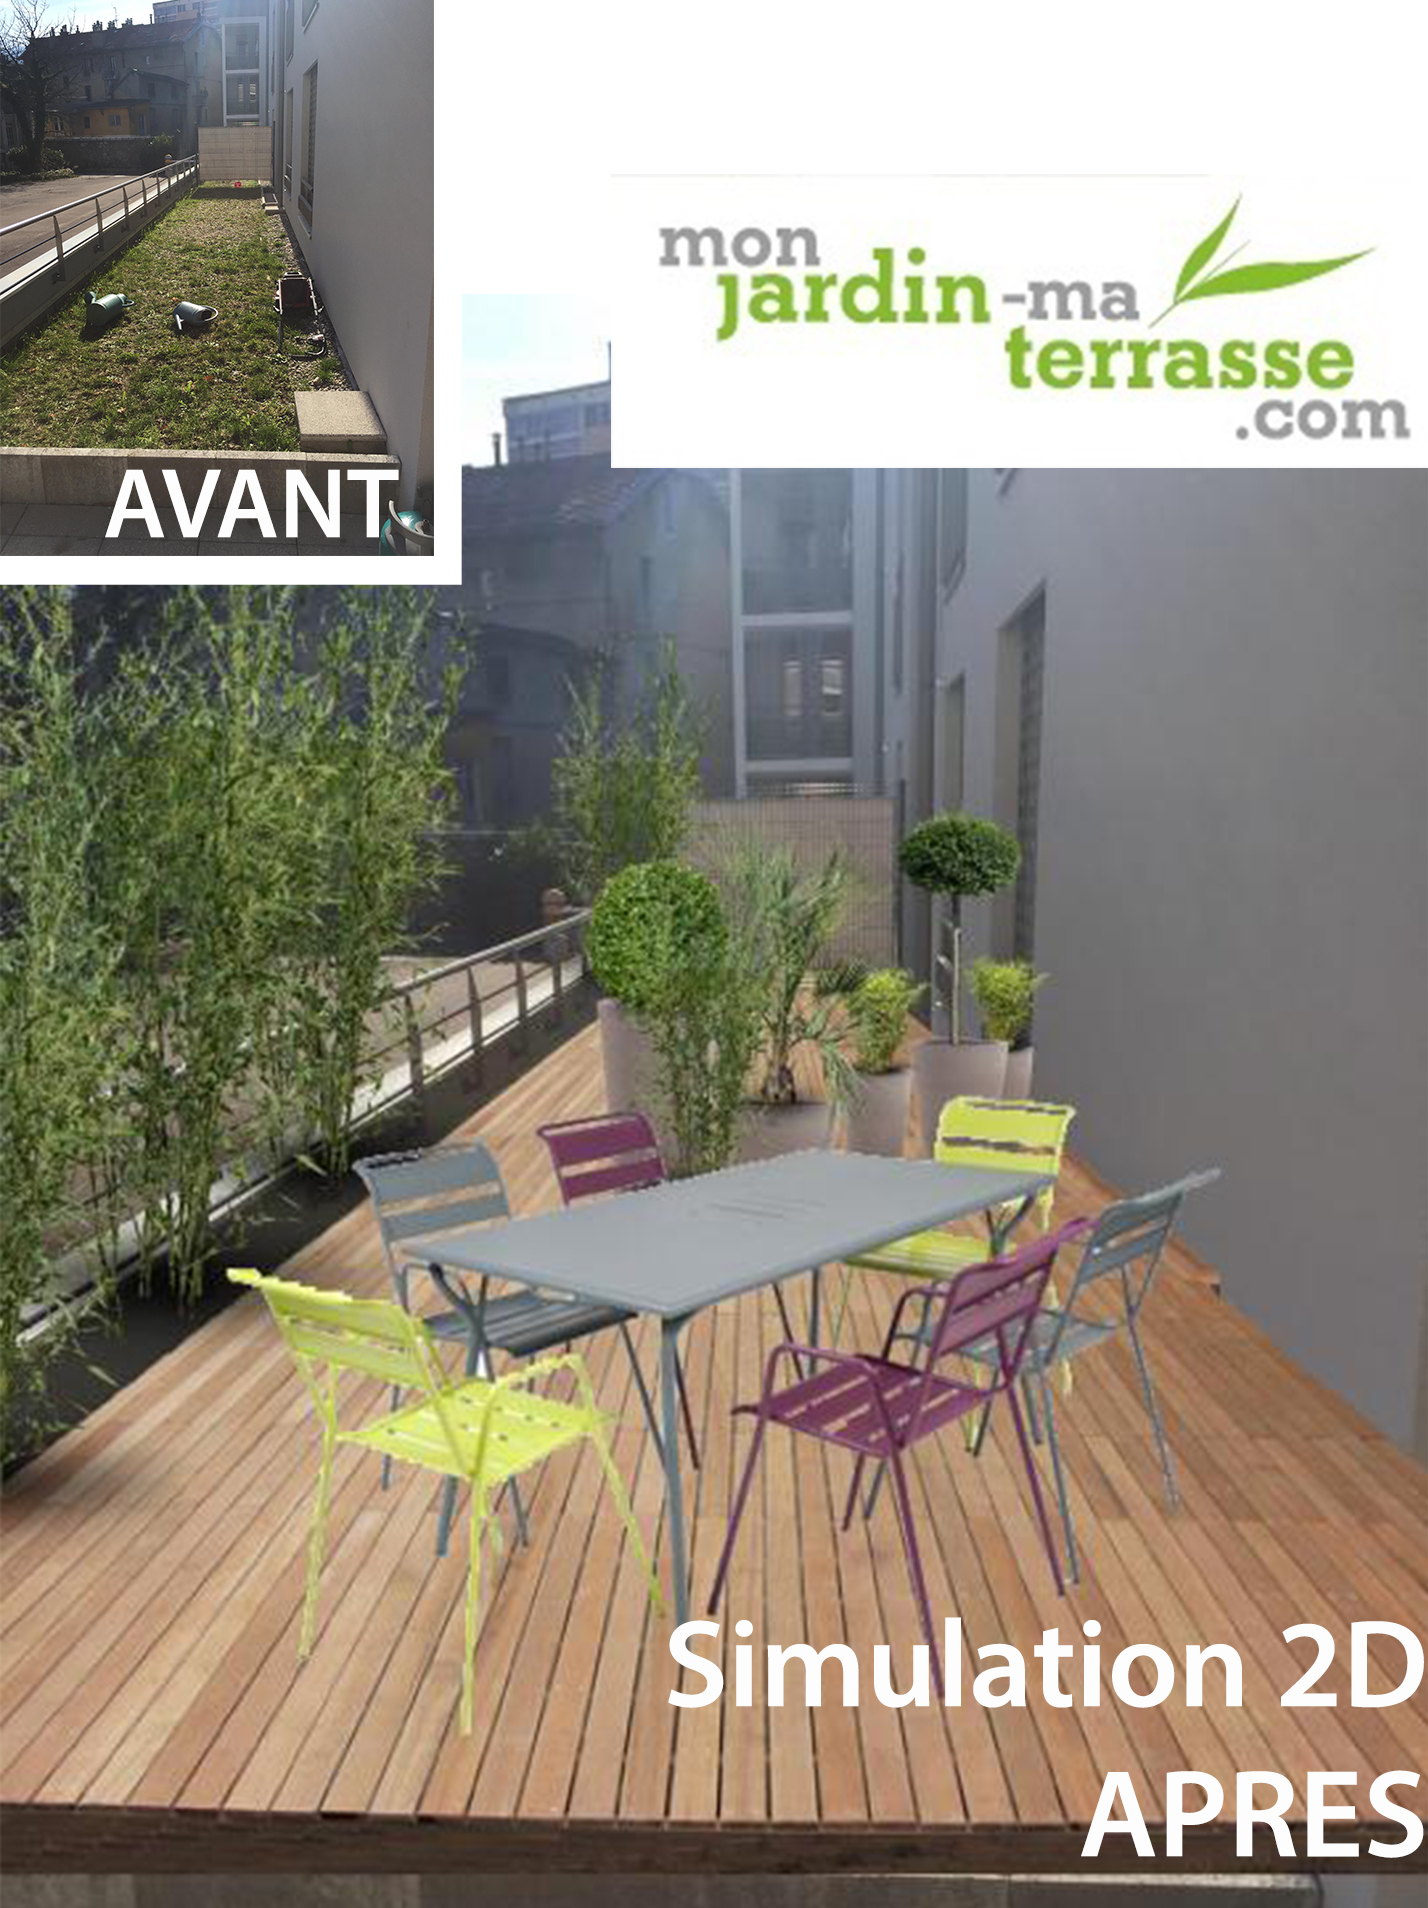 Am nagement du toit terrasse d un appartement monjardin for Amenagement de terrasse